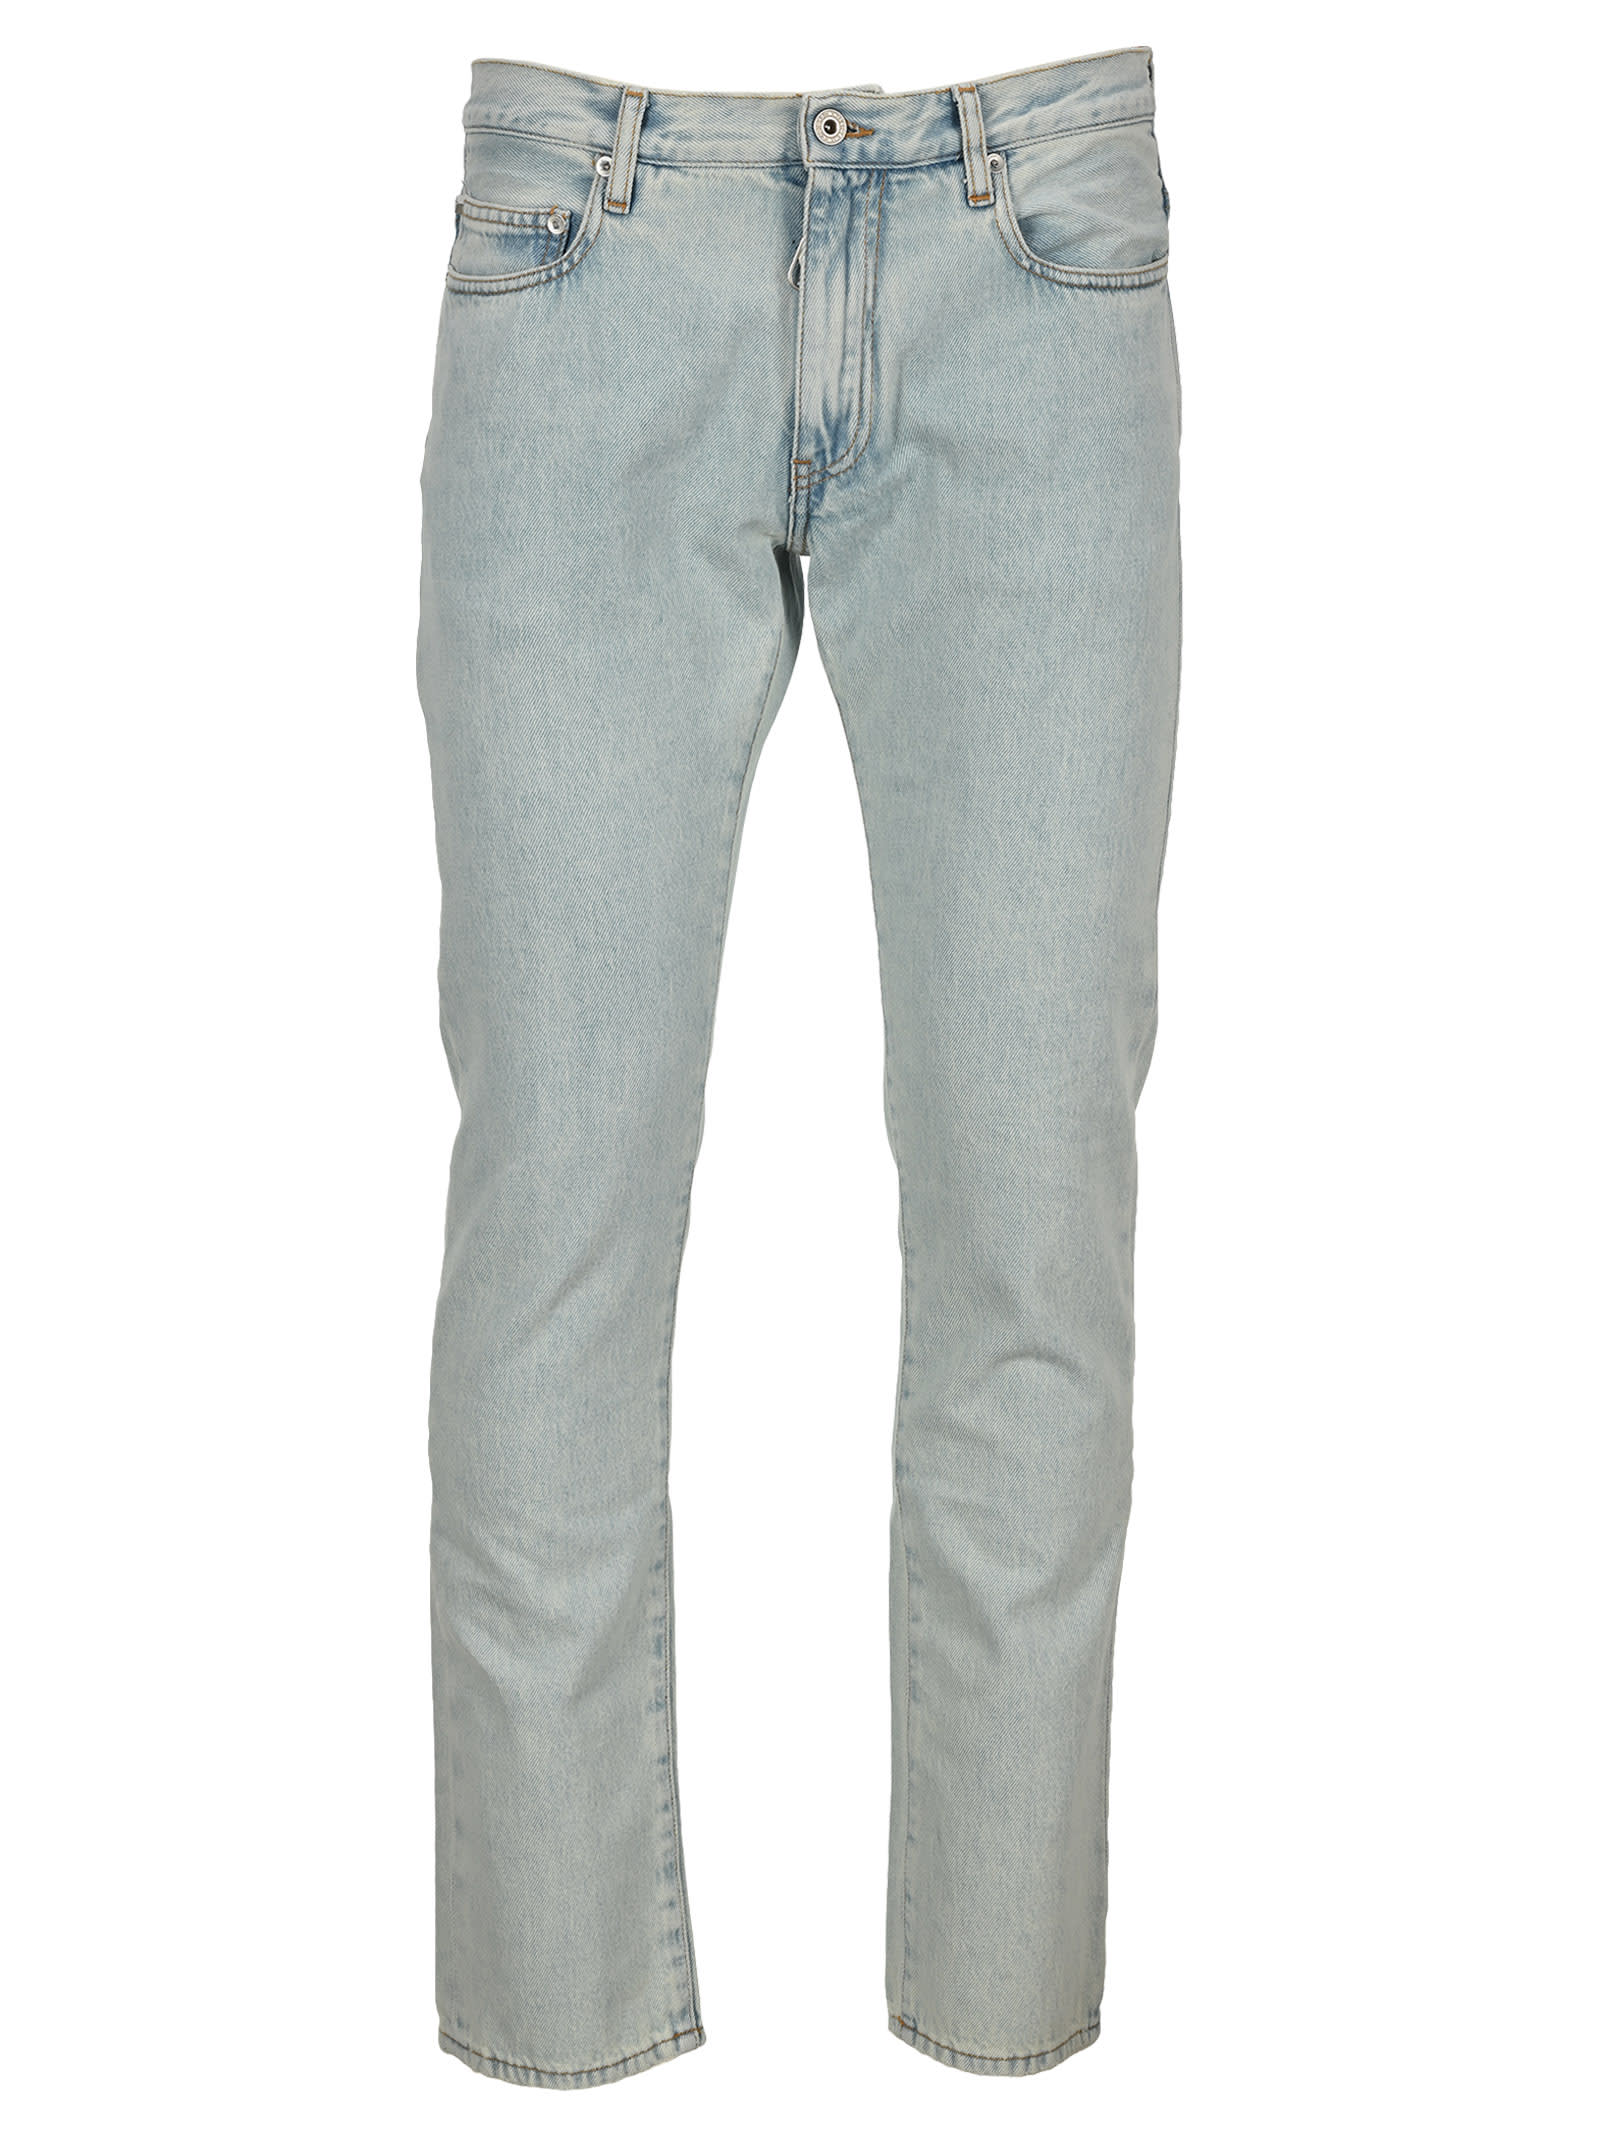 Off-White Cottons OFF WHITE SLIM FIT JEANS